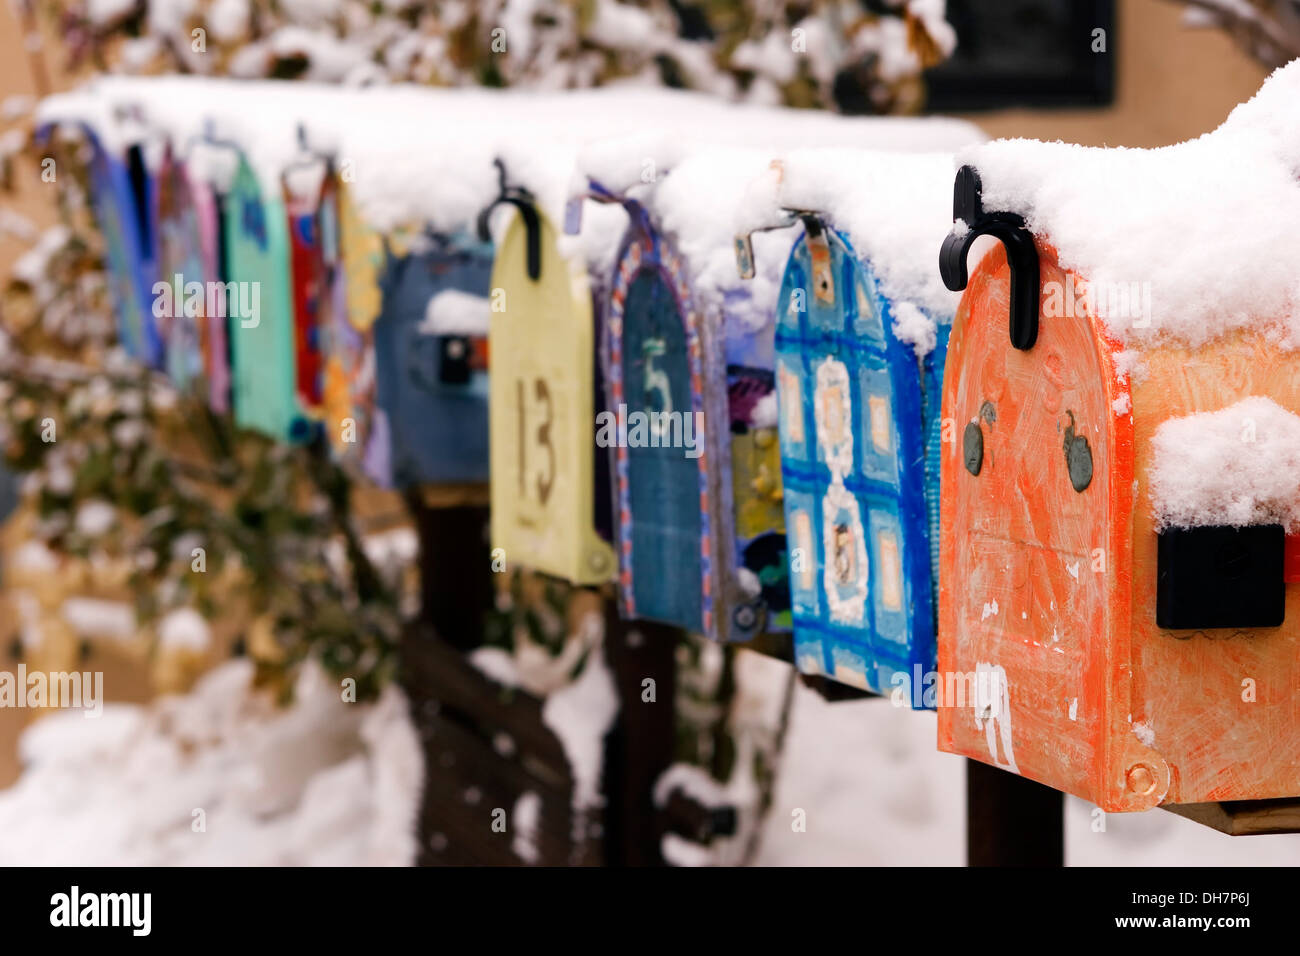 Colorful mailboxes covered in snow, Canyon Road, Santa Fe, New Mexico USA - Stock Image